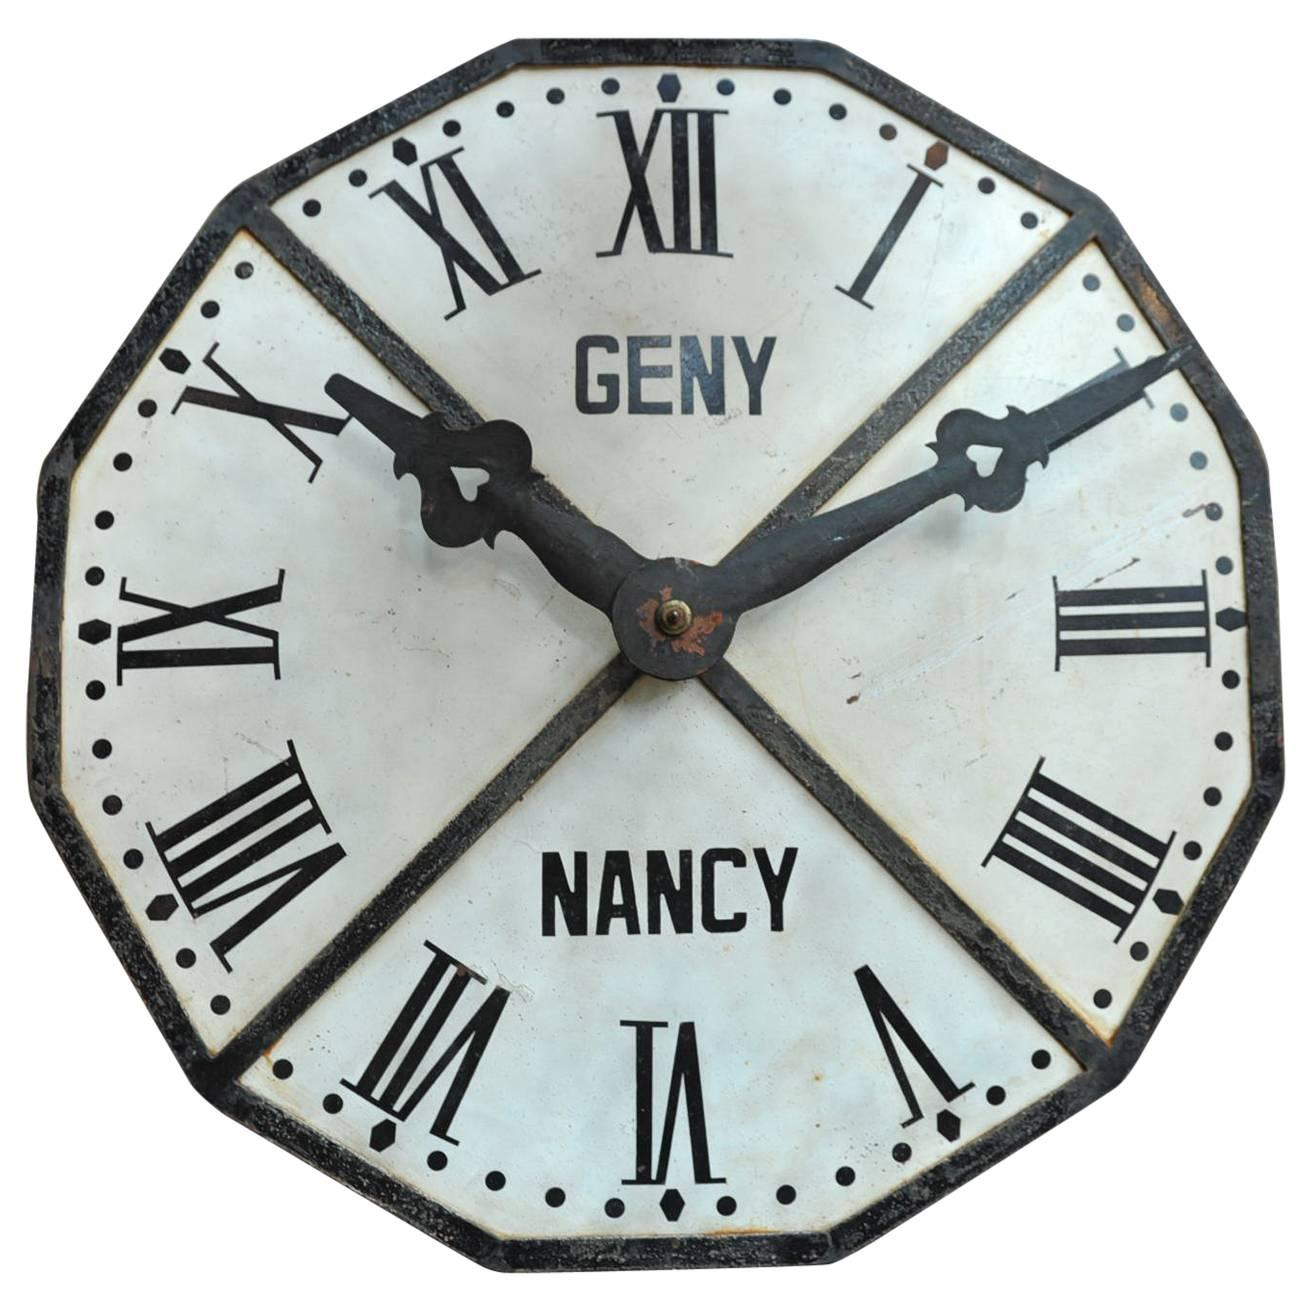 1900s french large iron train station clock face 1